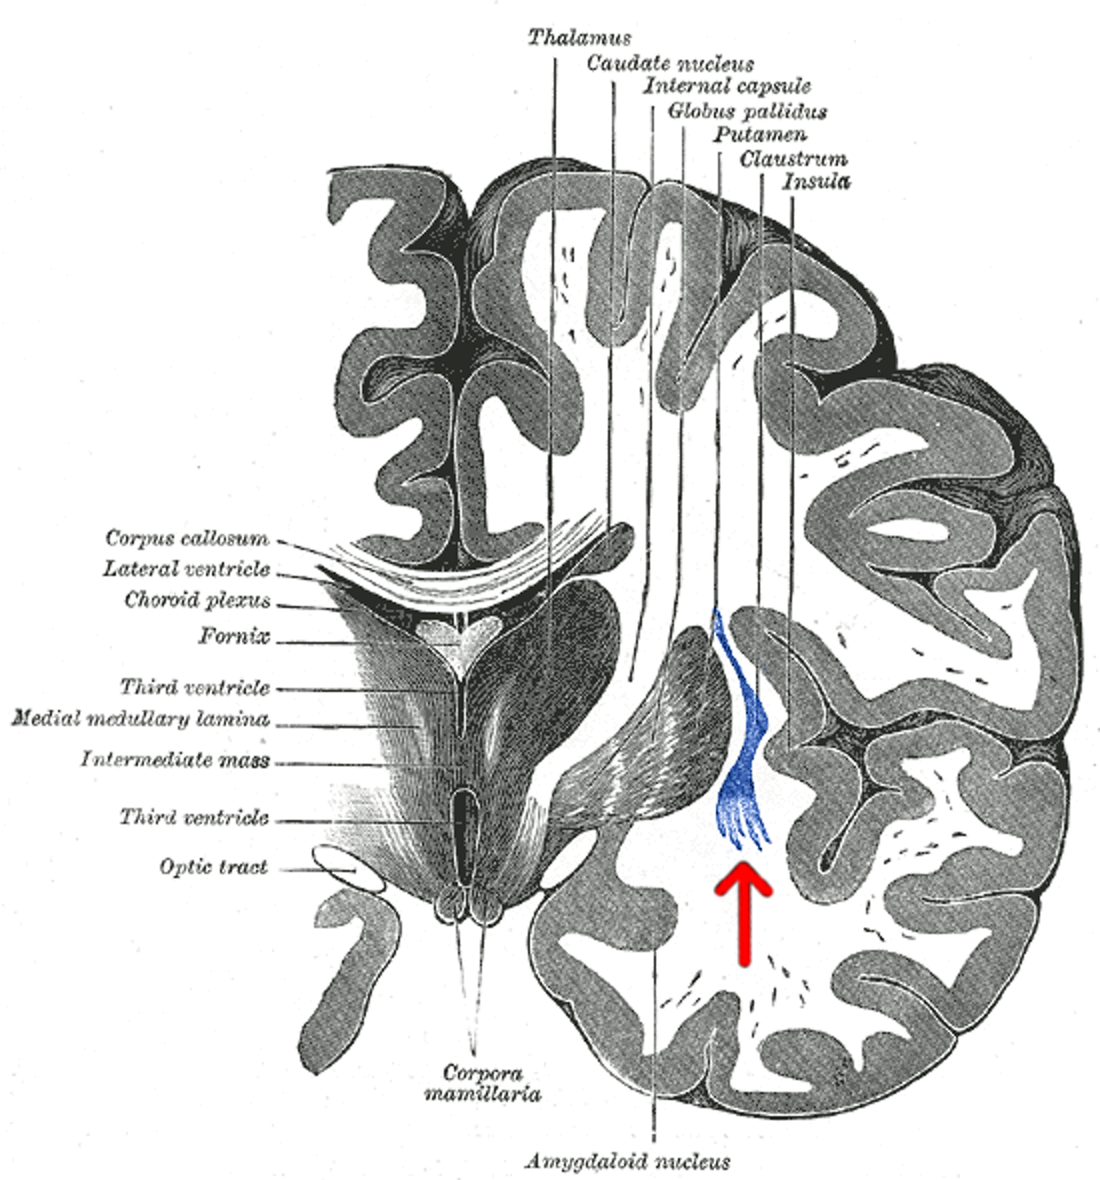 Discover This Forgotten Region of the Brain, According to a Neuroscientist